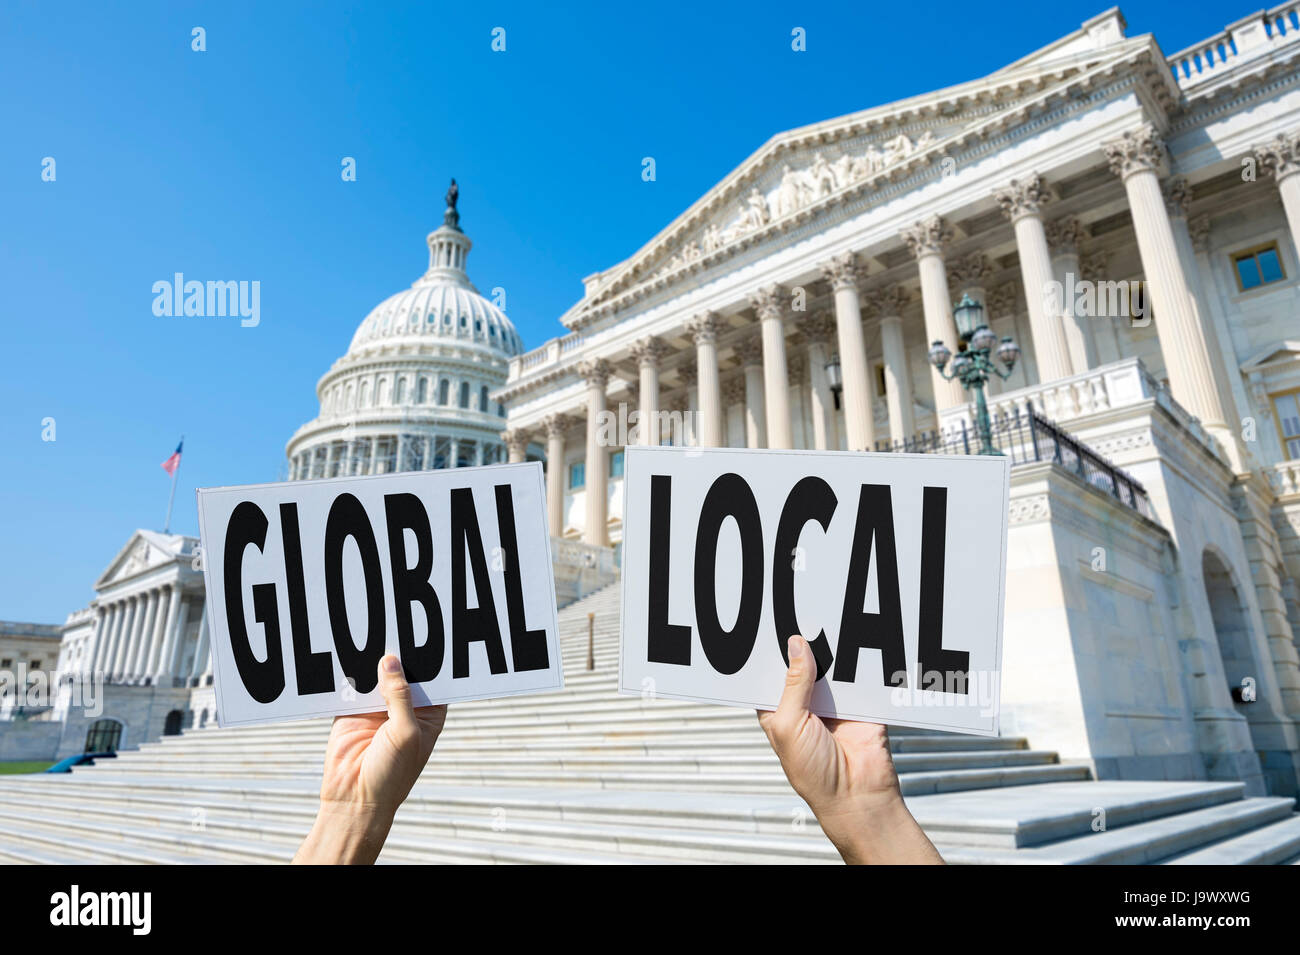 Protesters outside the US Capitol Building in Washington, DC holding protest signs supporting global and local issues, - Stock Image